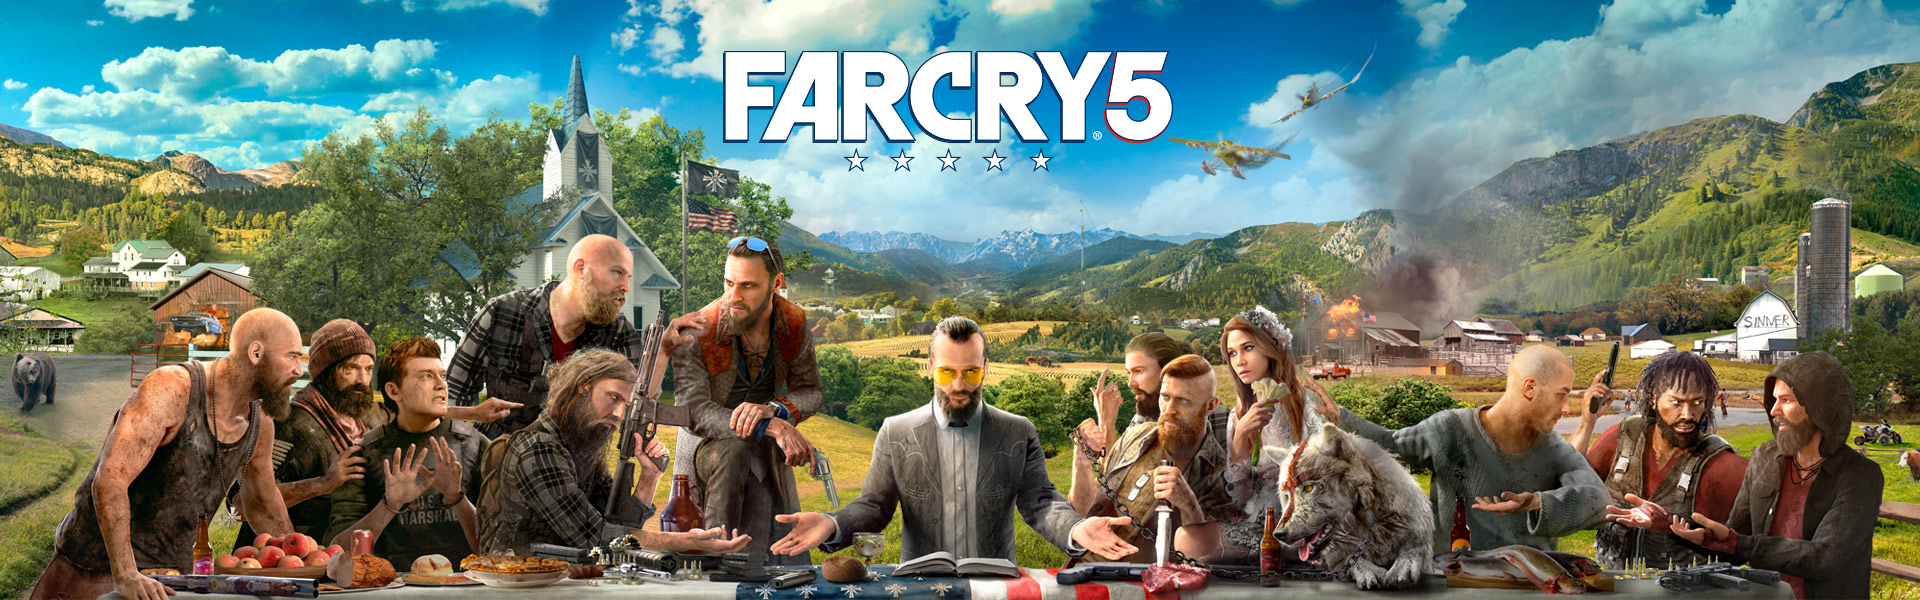 Far Cry 5 (personnages assis à table imitant la peinture La Cène de Léonard de Vinci)